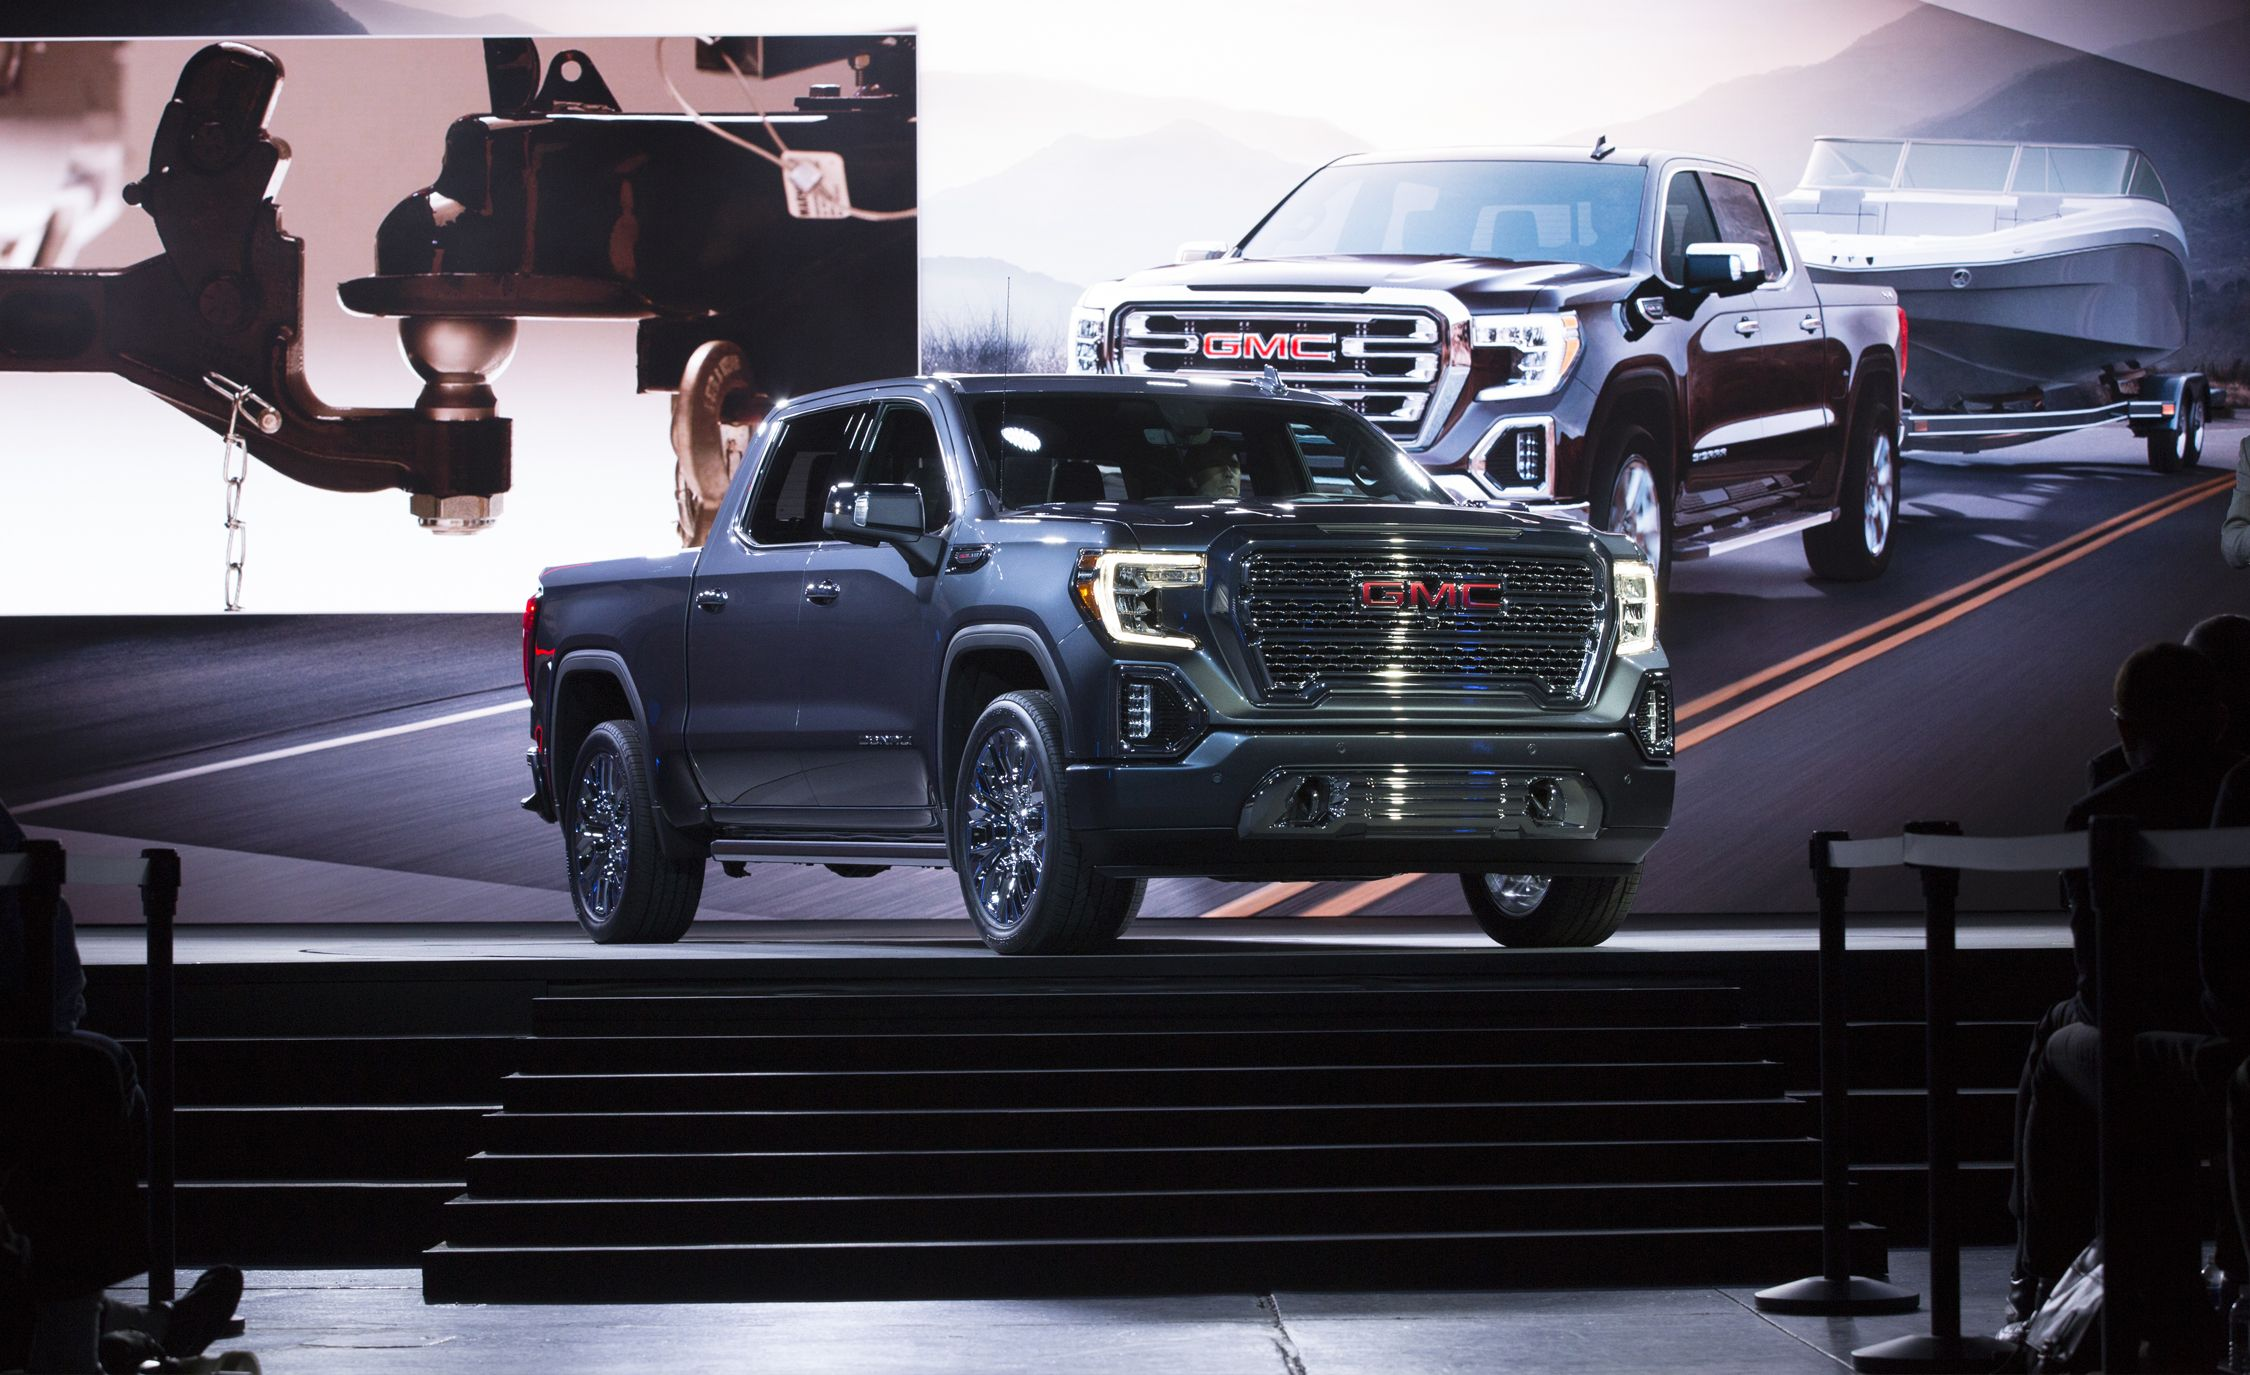 Gmc Diesel Trucks >> 2019 Gmc Sierra Pickup Diesel Power And A Carbon Fiber Bed News